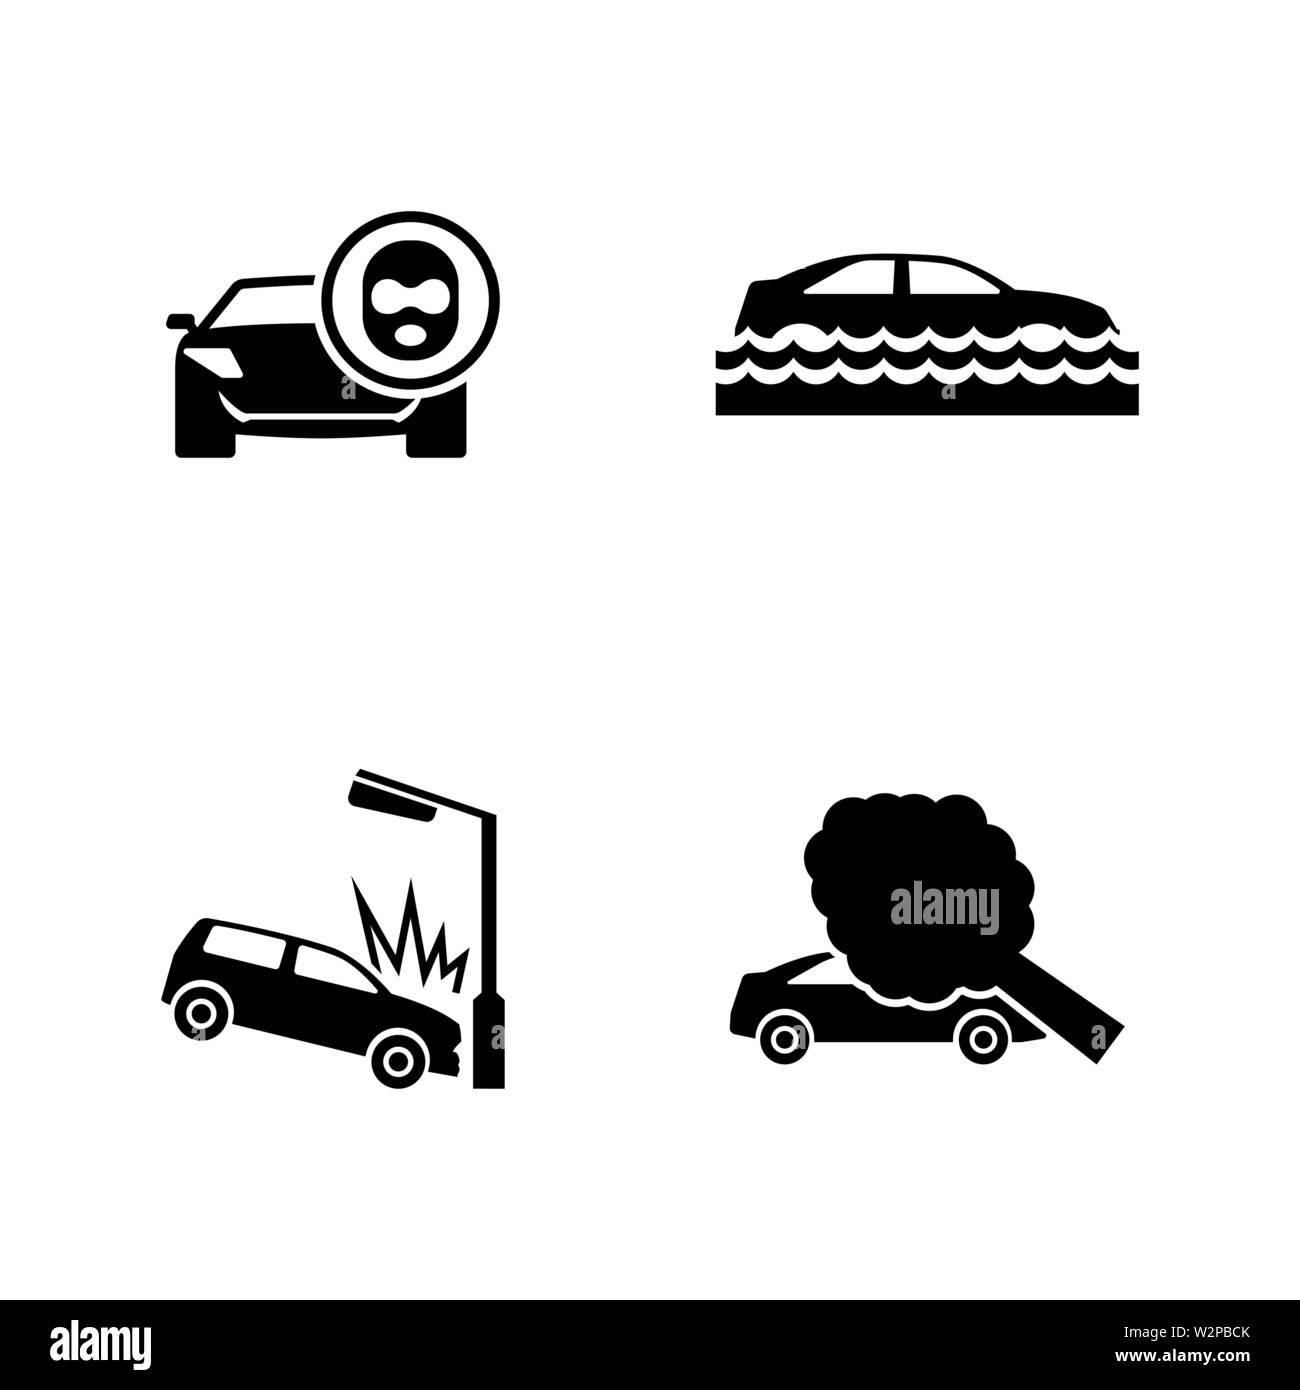 Car Crashes. Simple Related Vector Icons Set for Video, Mobile Apps, Web Sites, Print Projects and Your Design. Black Flat Illustration on White Backg - Stock Image